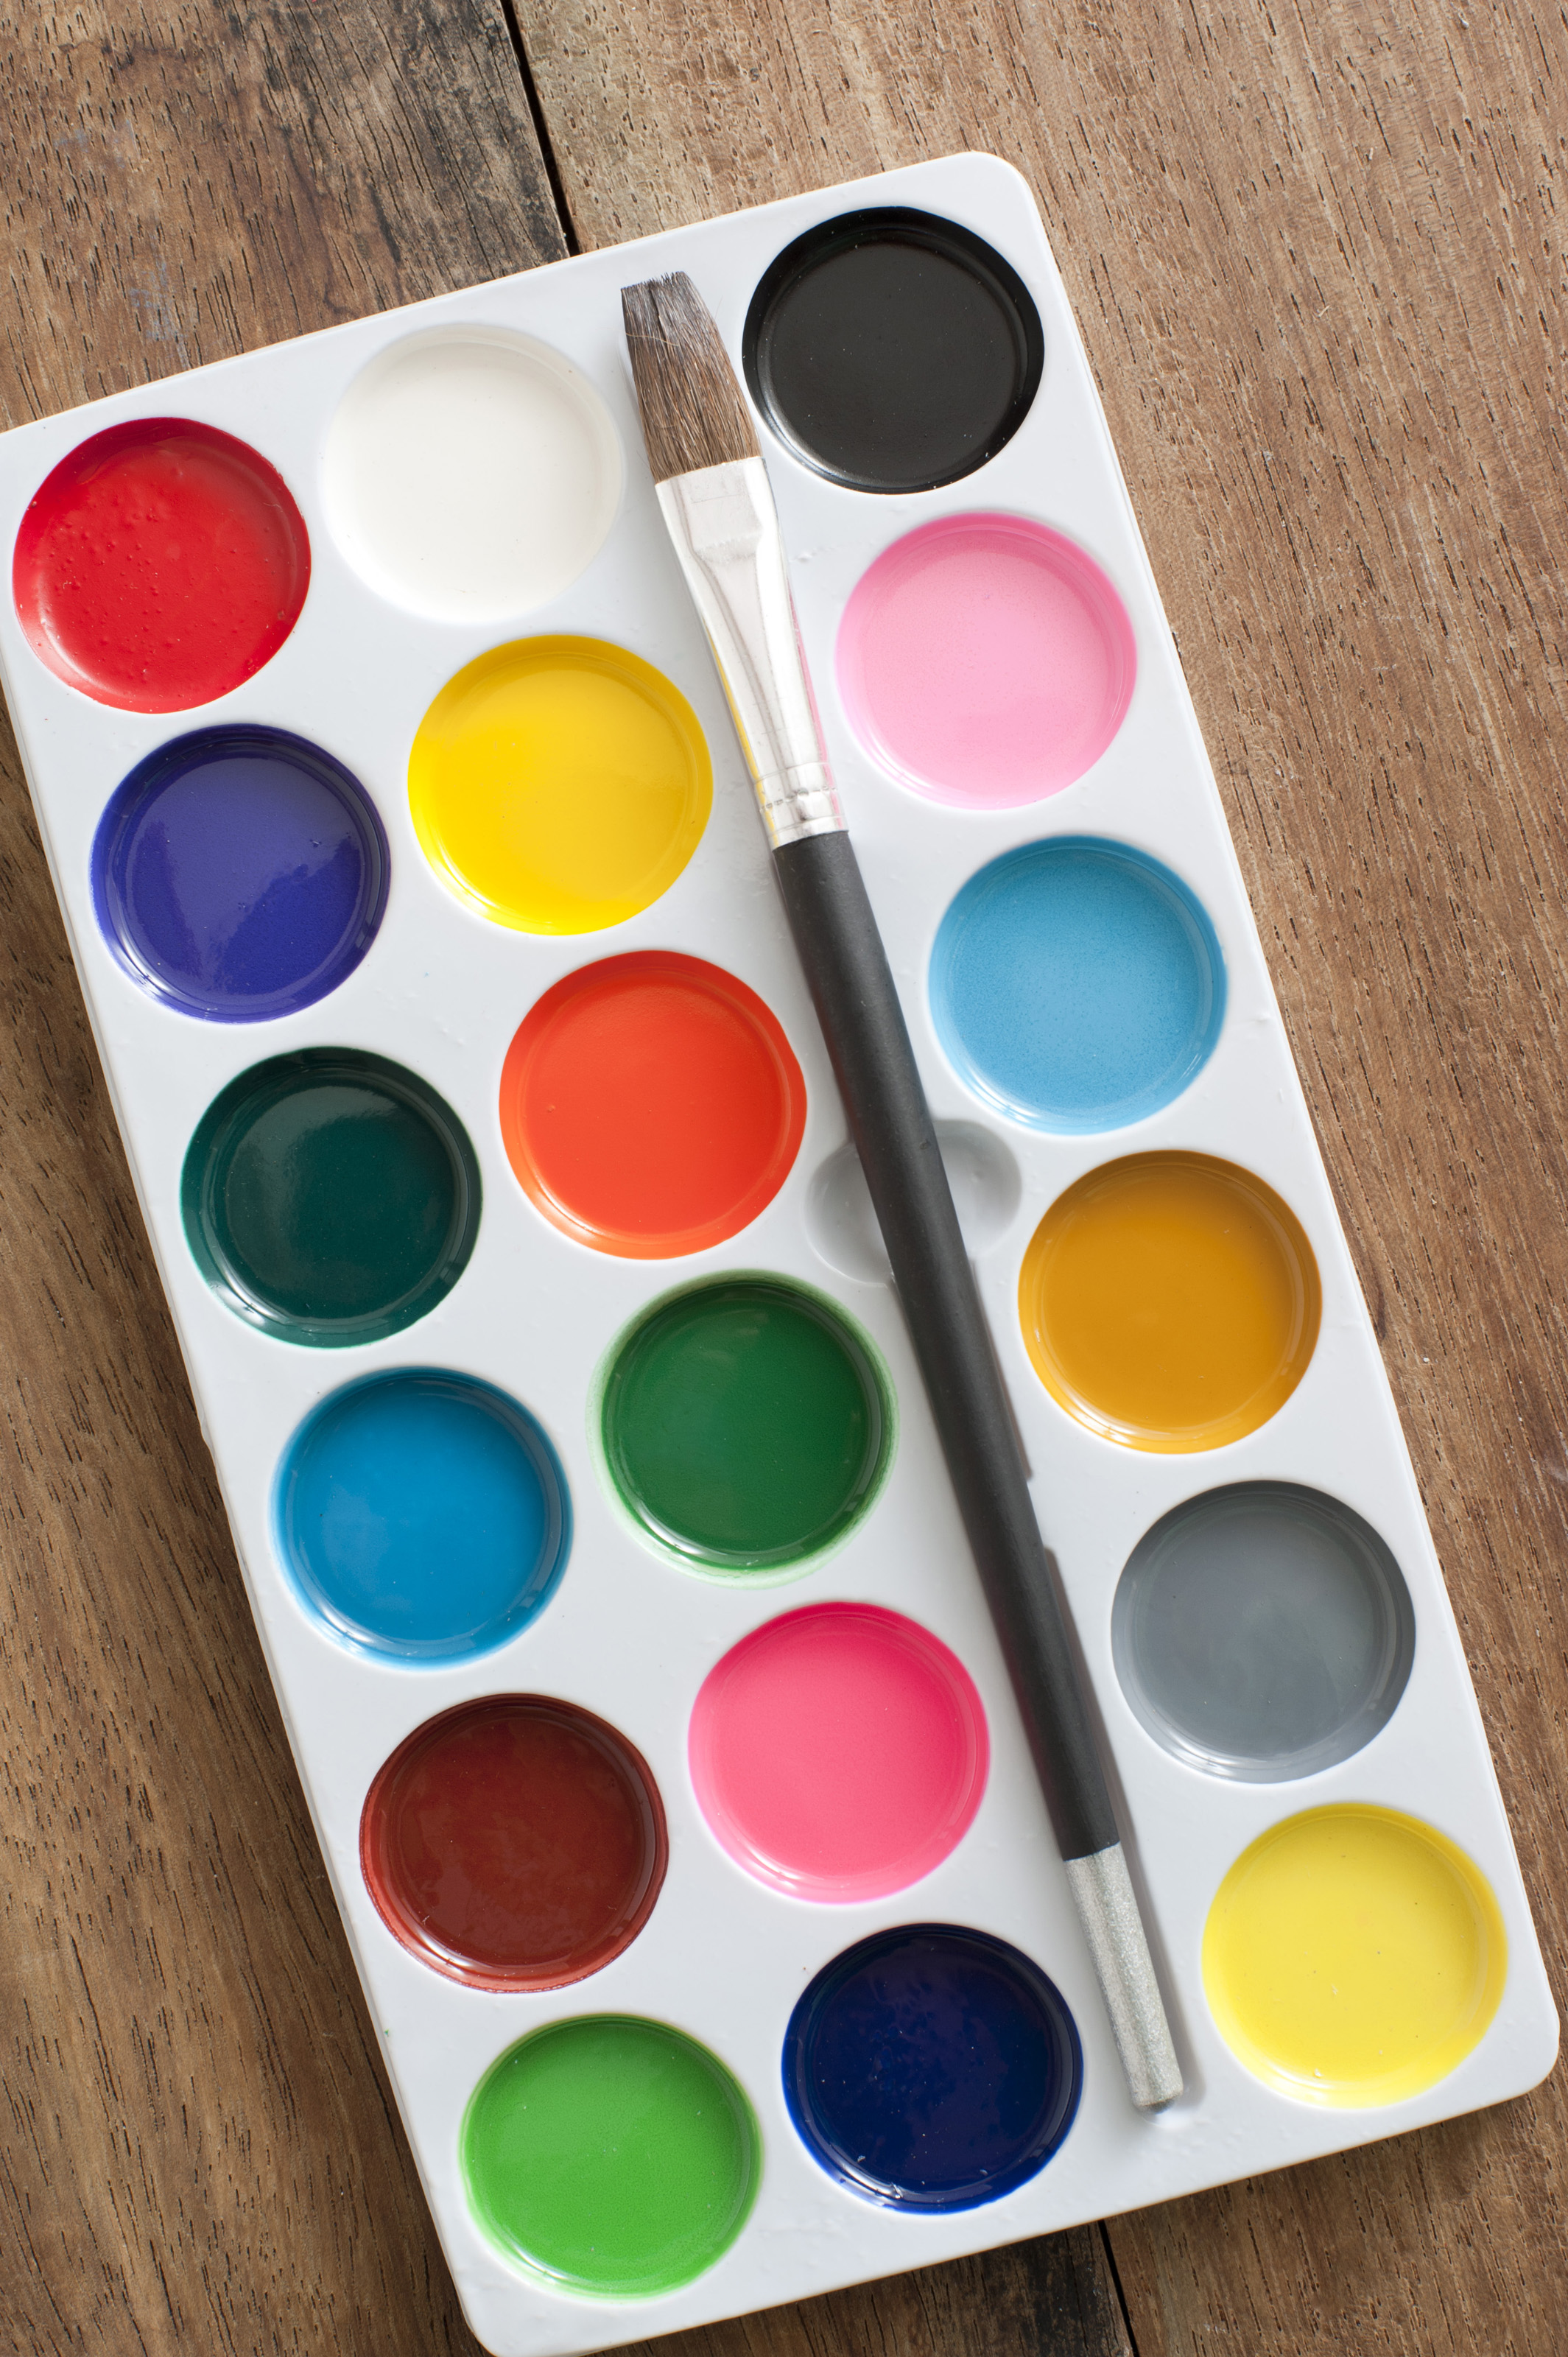 Bad Inspiration Free Stock Photo 12189 Poster Paint Set With Brush